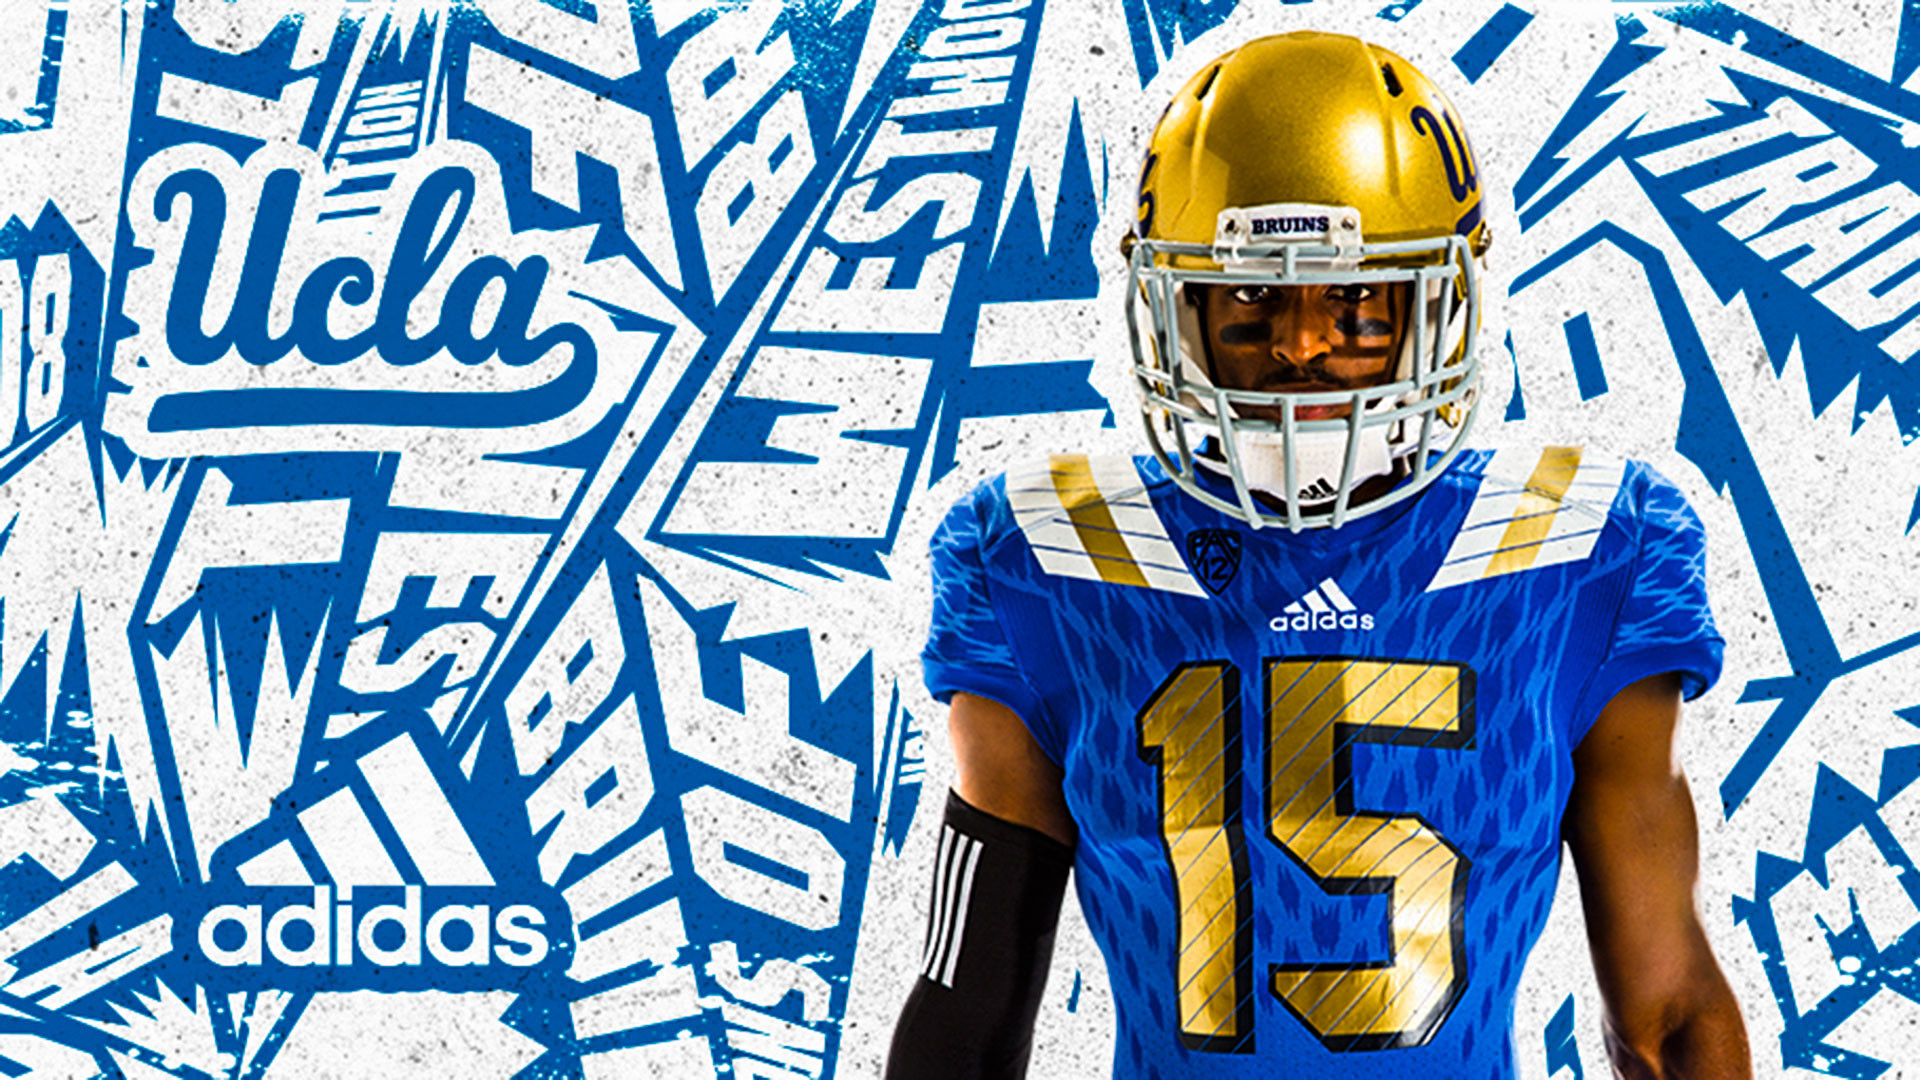 1920x1080 UCLA, adidas unveil new Bruins Primeknit core uniforms for Sept. 5 opener |  Sporting News